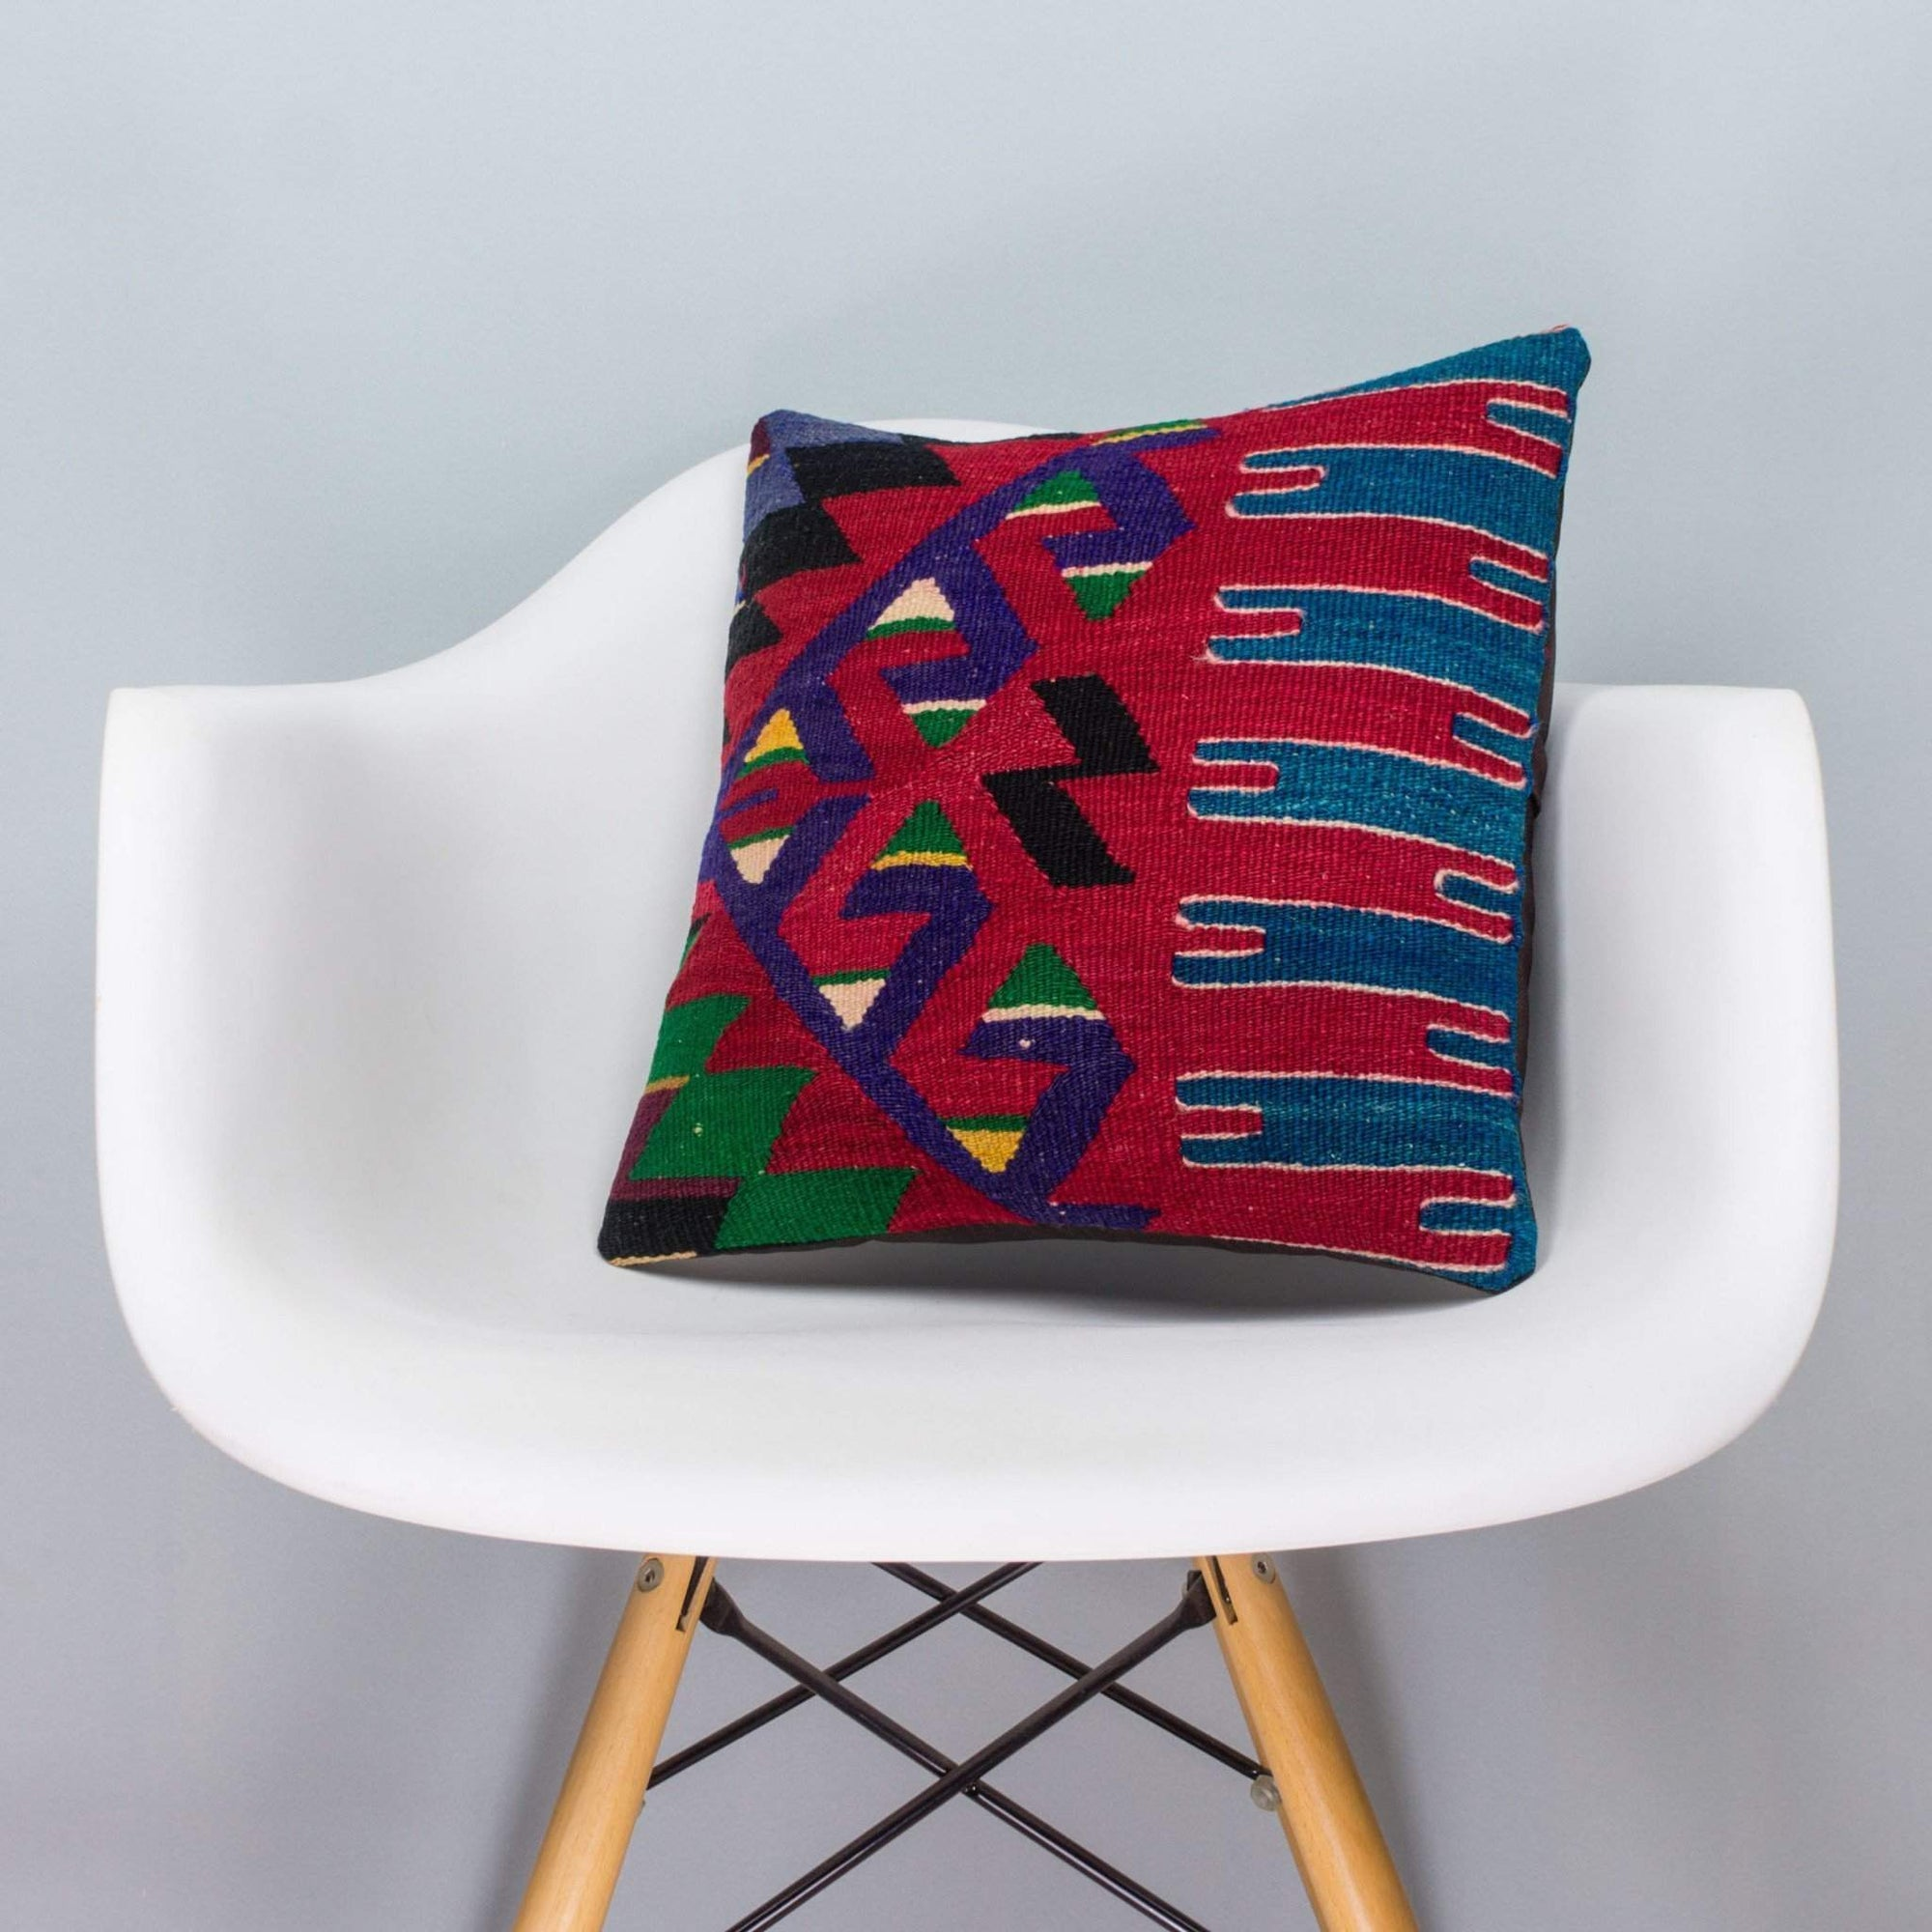 Chevron Multi Color Kilim Pillow Cover 16x16 3271